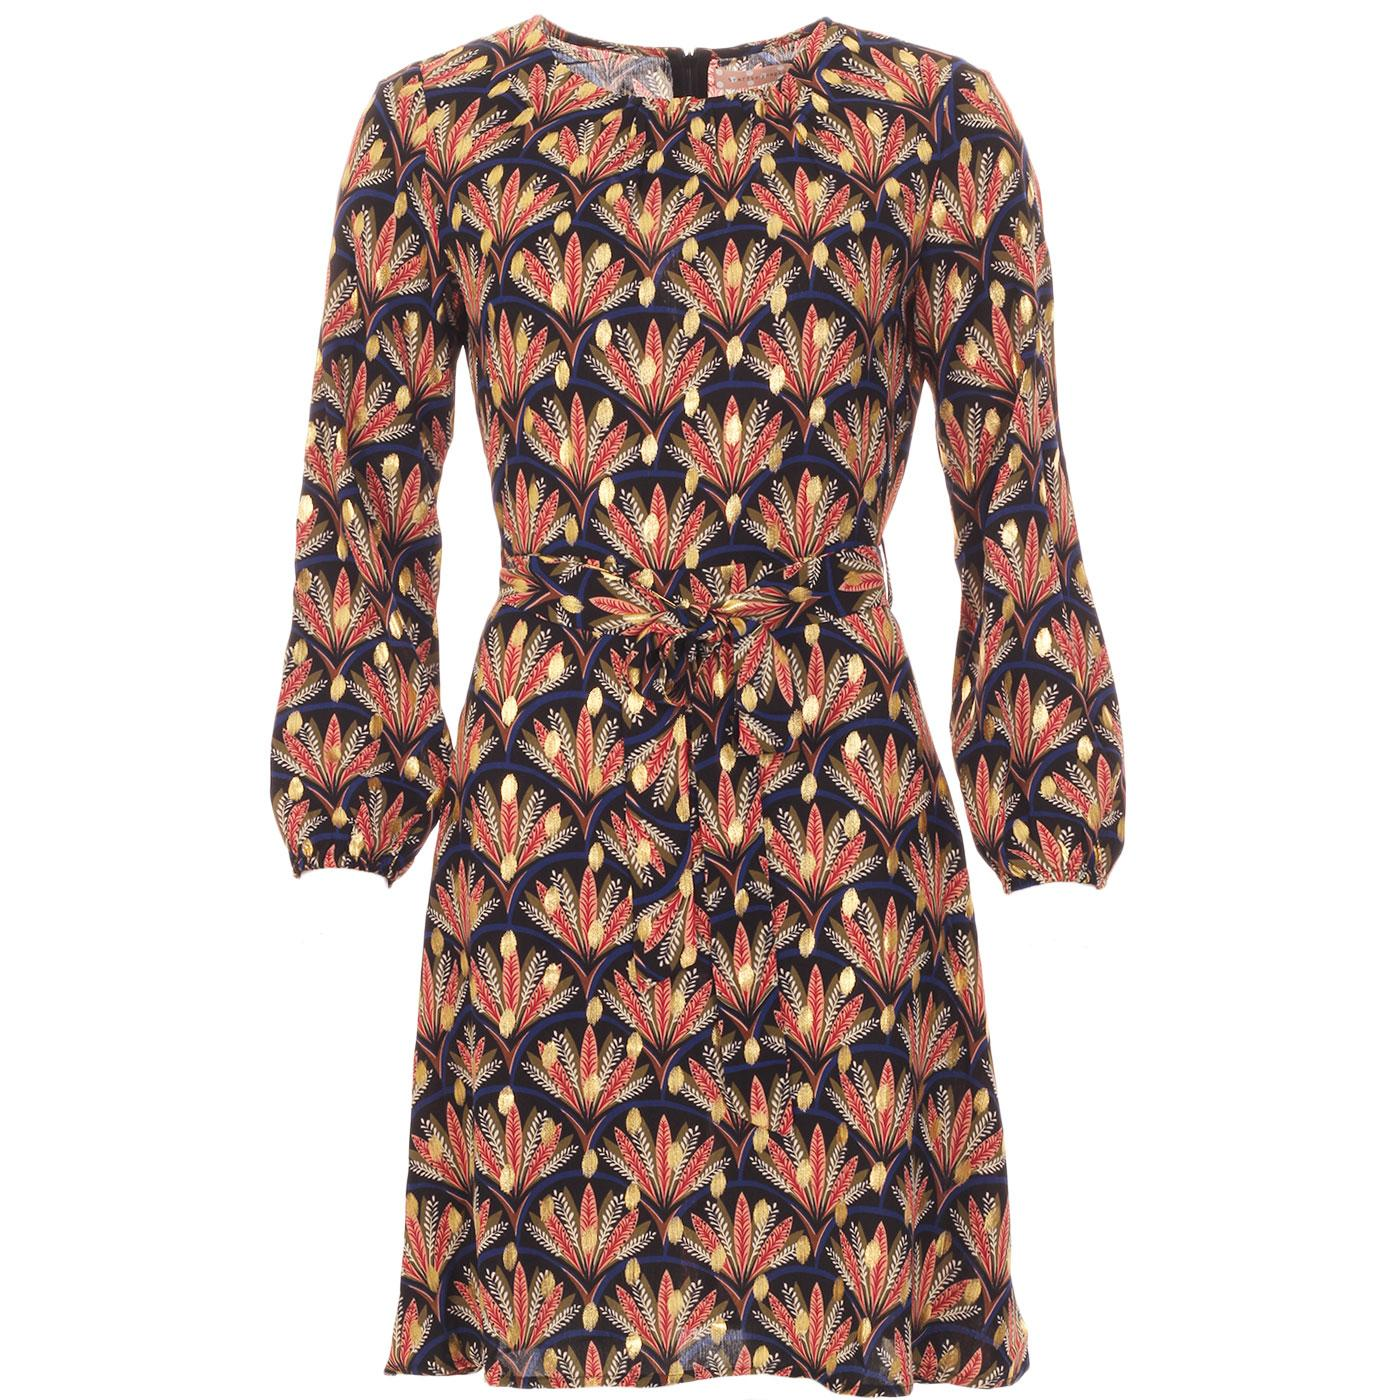 Cusp TRAFFIC PEOPLE Retro 60s Floral Leaf Dress